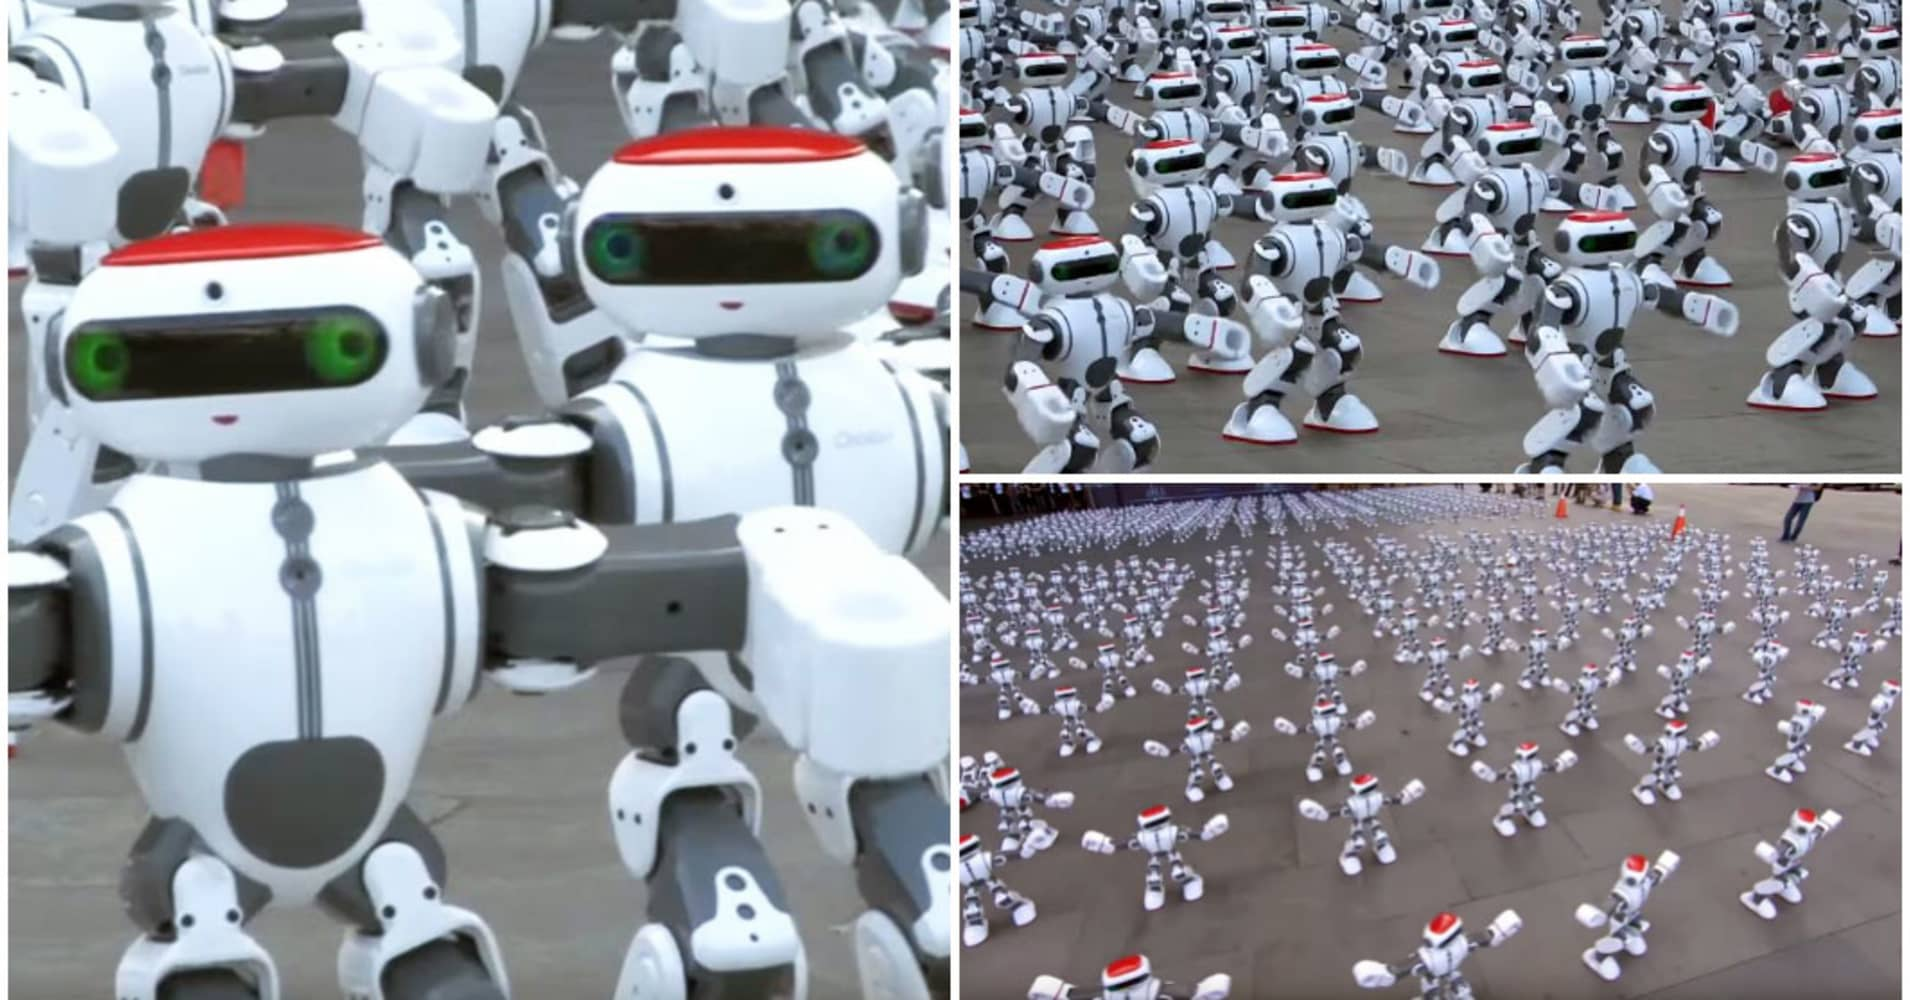 1,069 robots dancing simultaneously broke the Guinness World Records